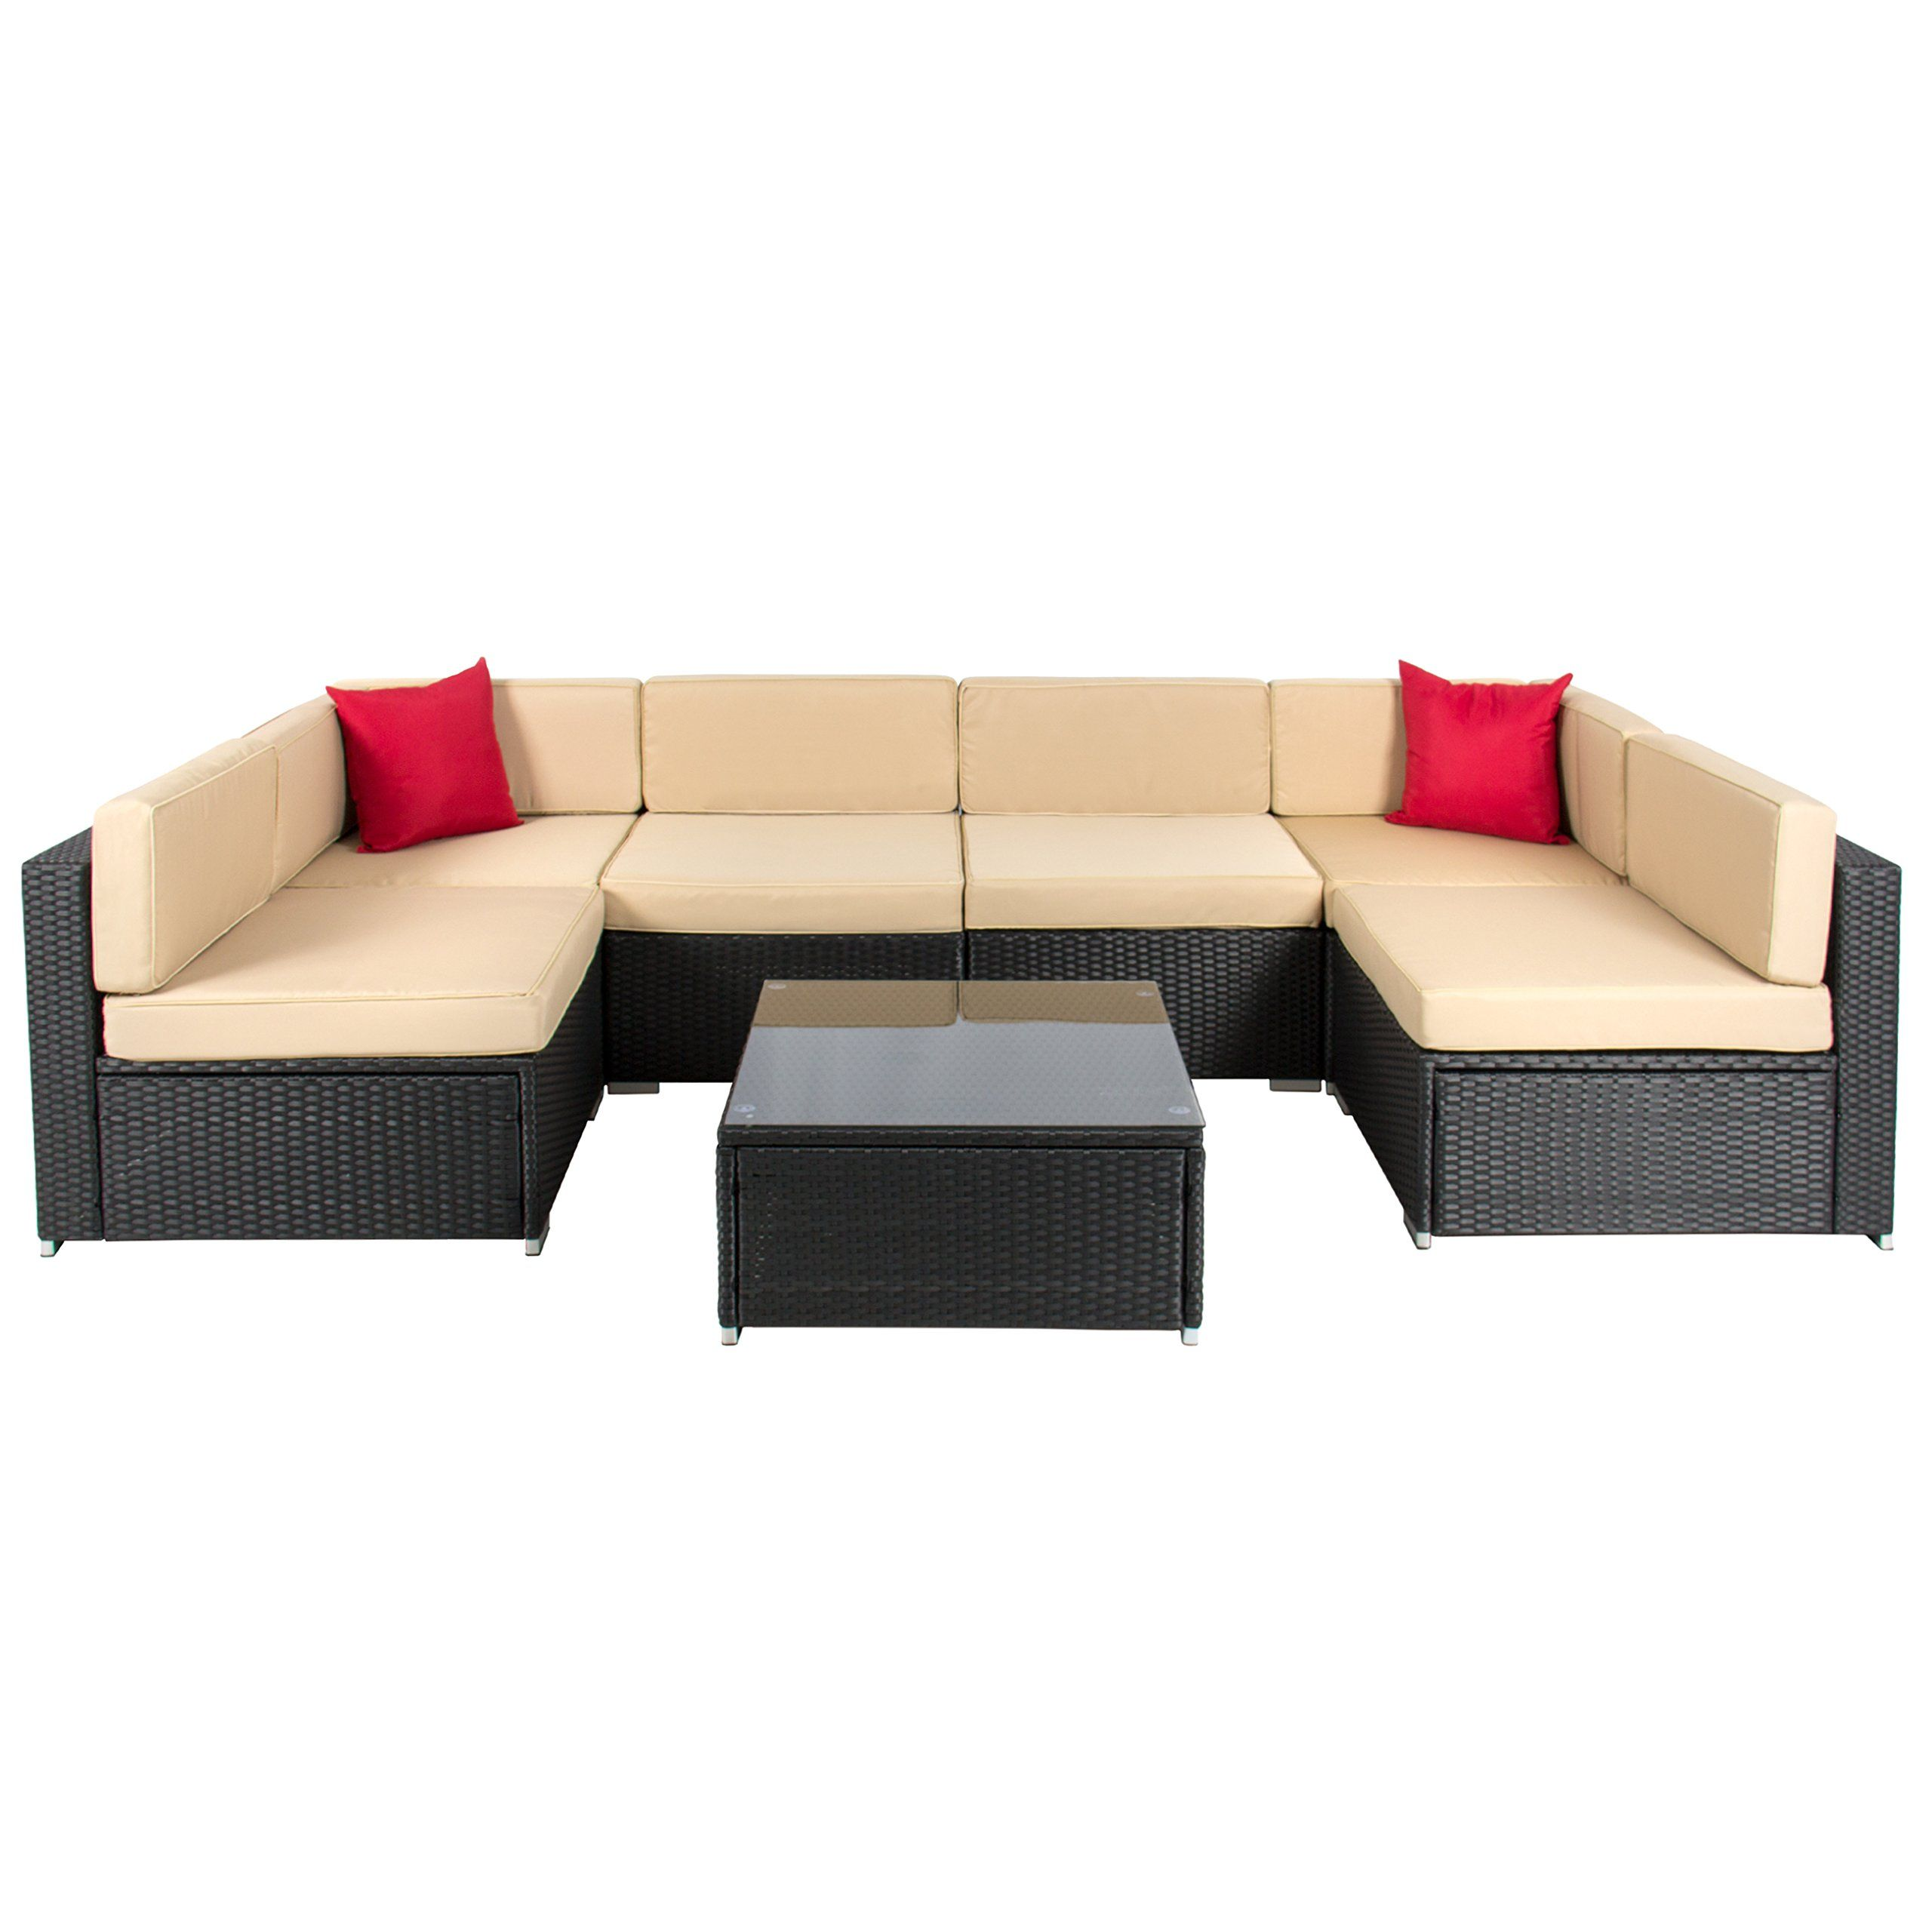 afe0c285edc Amazon.com   Best ChoiceProducts 7 Piece Outdoor Patio Garden Furniture  Wicker Rattan Sofa Set Sectional